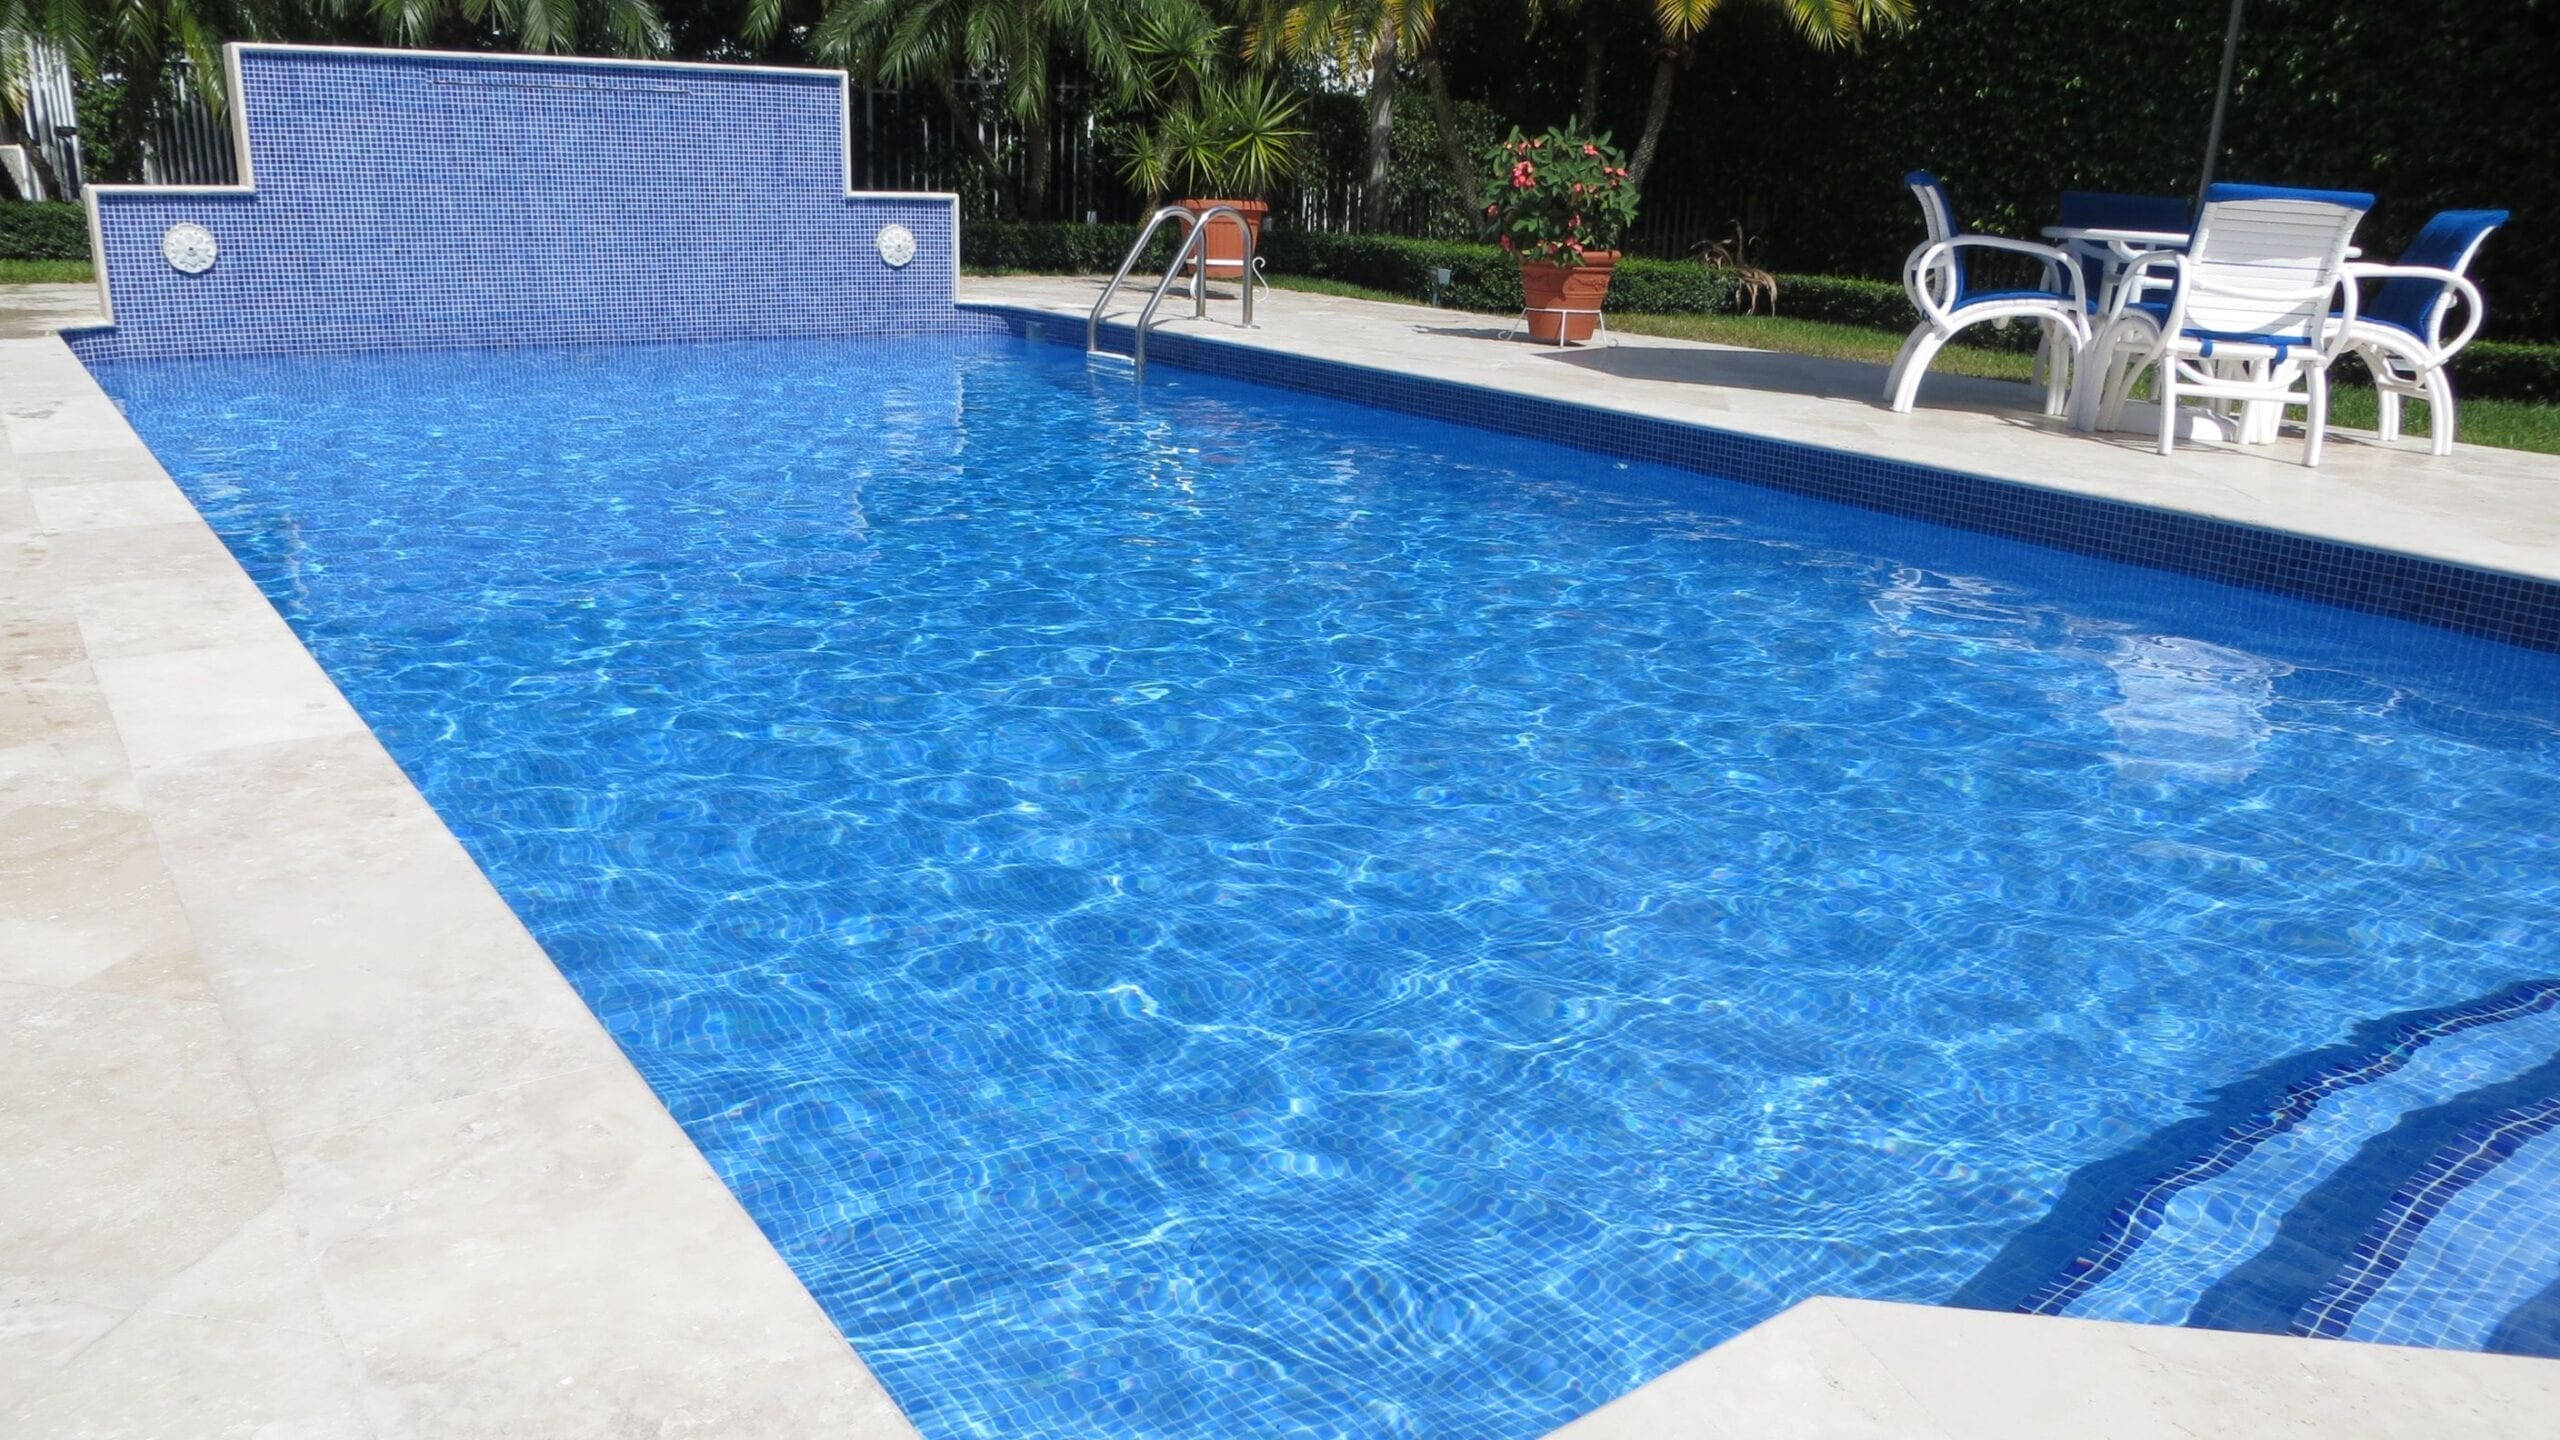 Pool In Spring - Acquality Pool Service